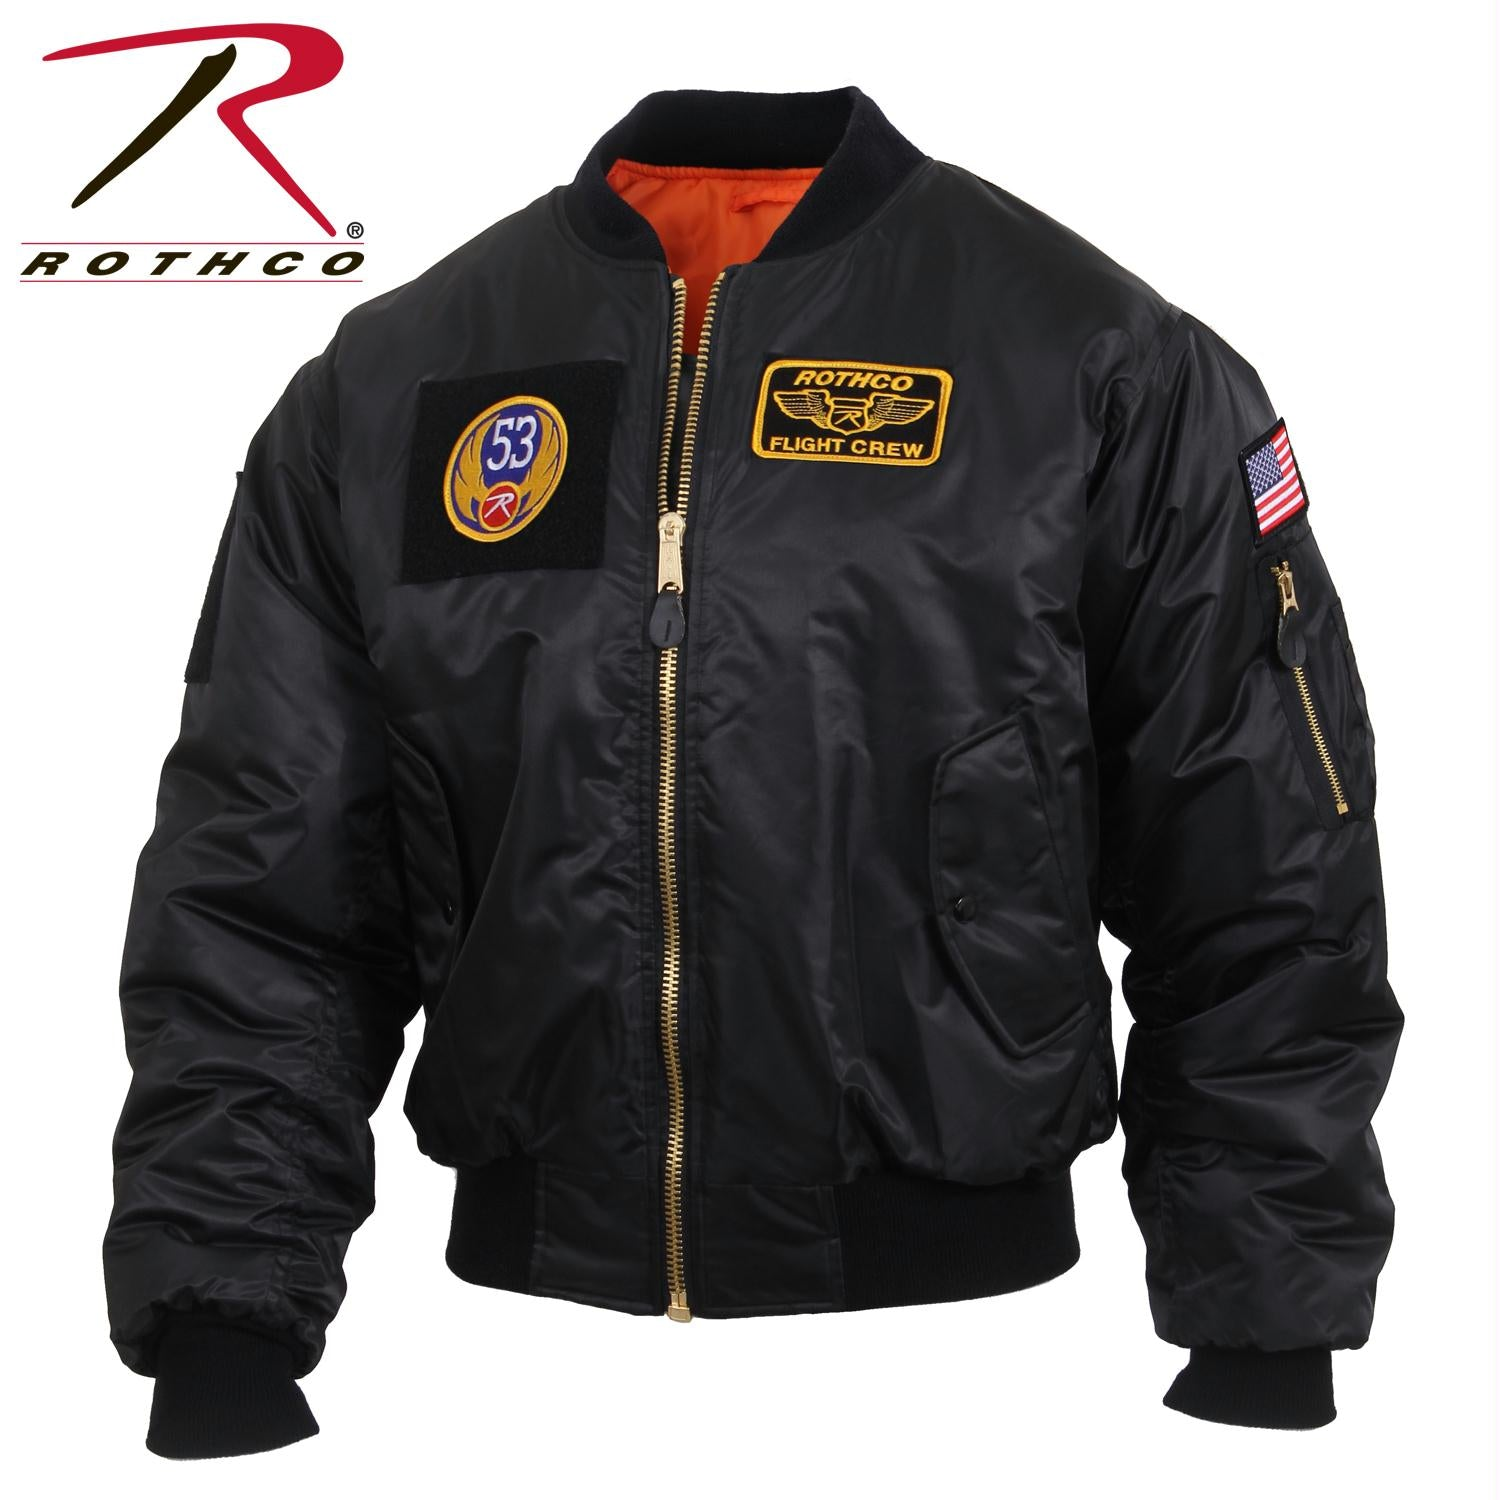 Rothco MA-1 Flight Jacket with Patches - Black / L